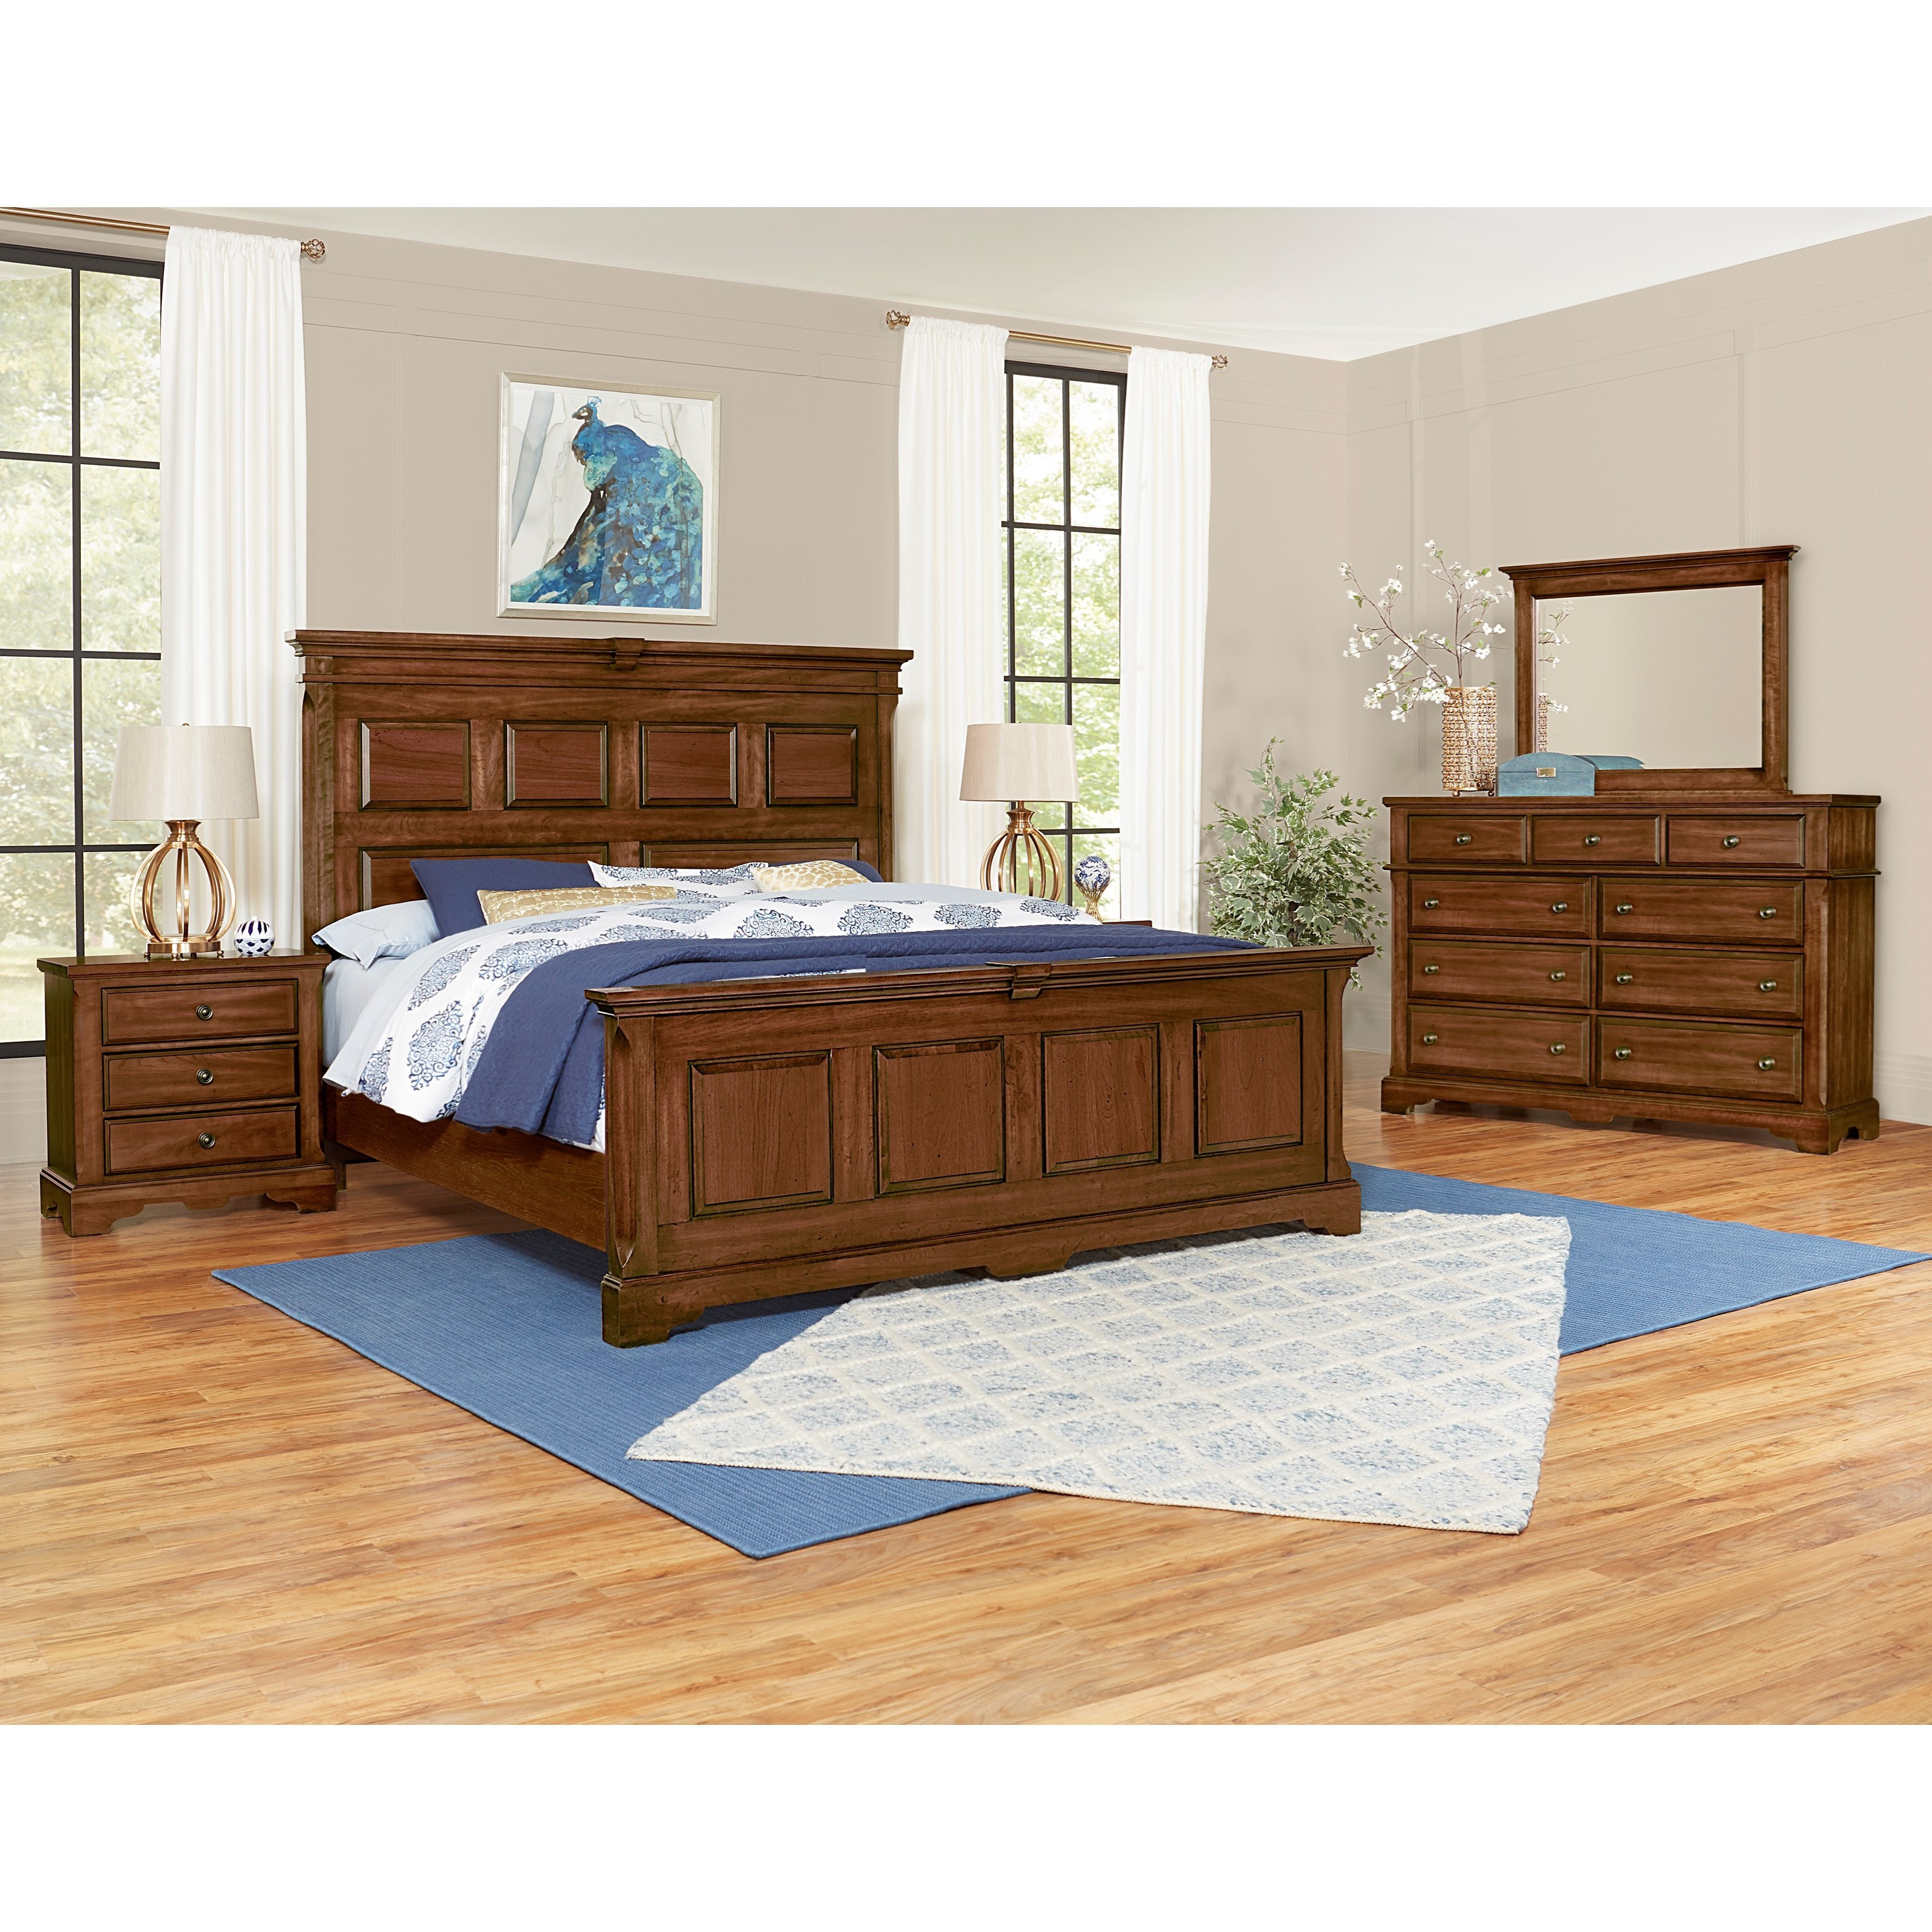 Heritage California King Bedroom Group by Artisan & Post at Northeast Factory Direct